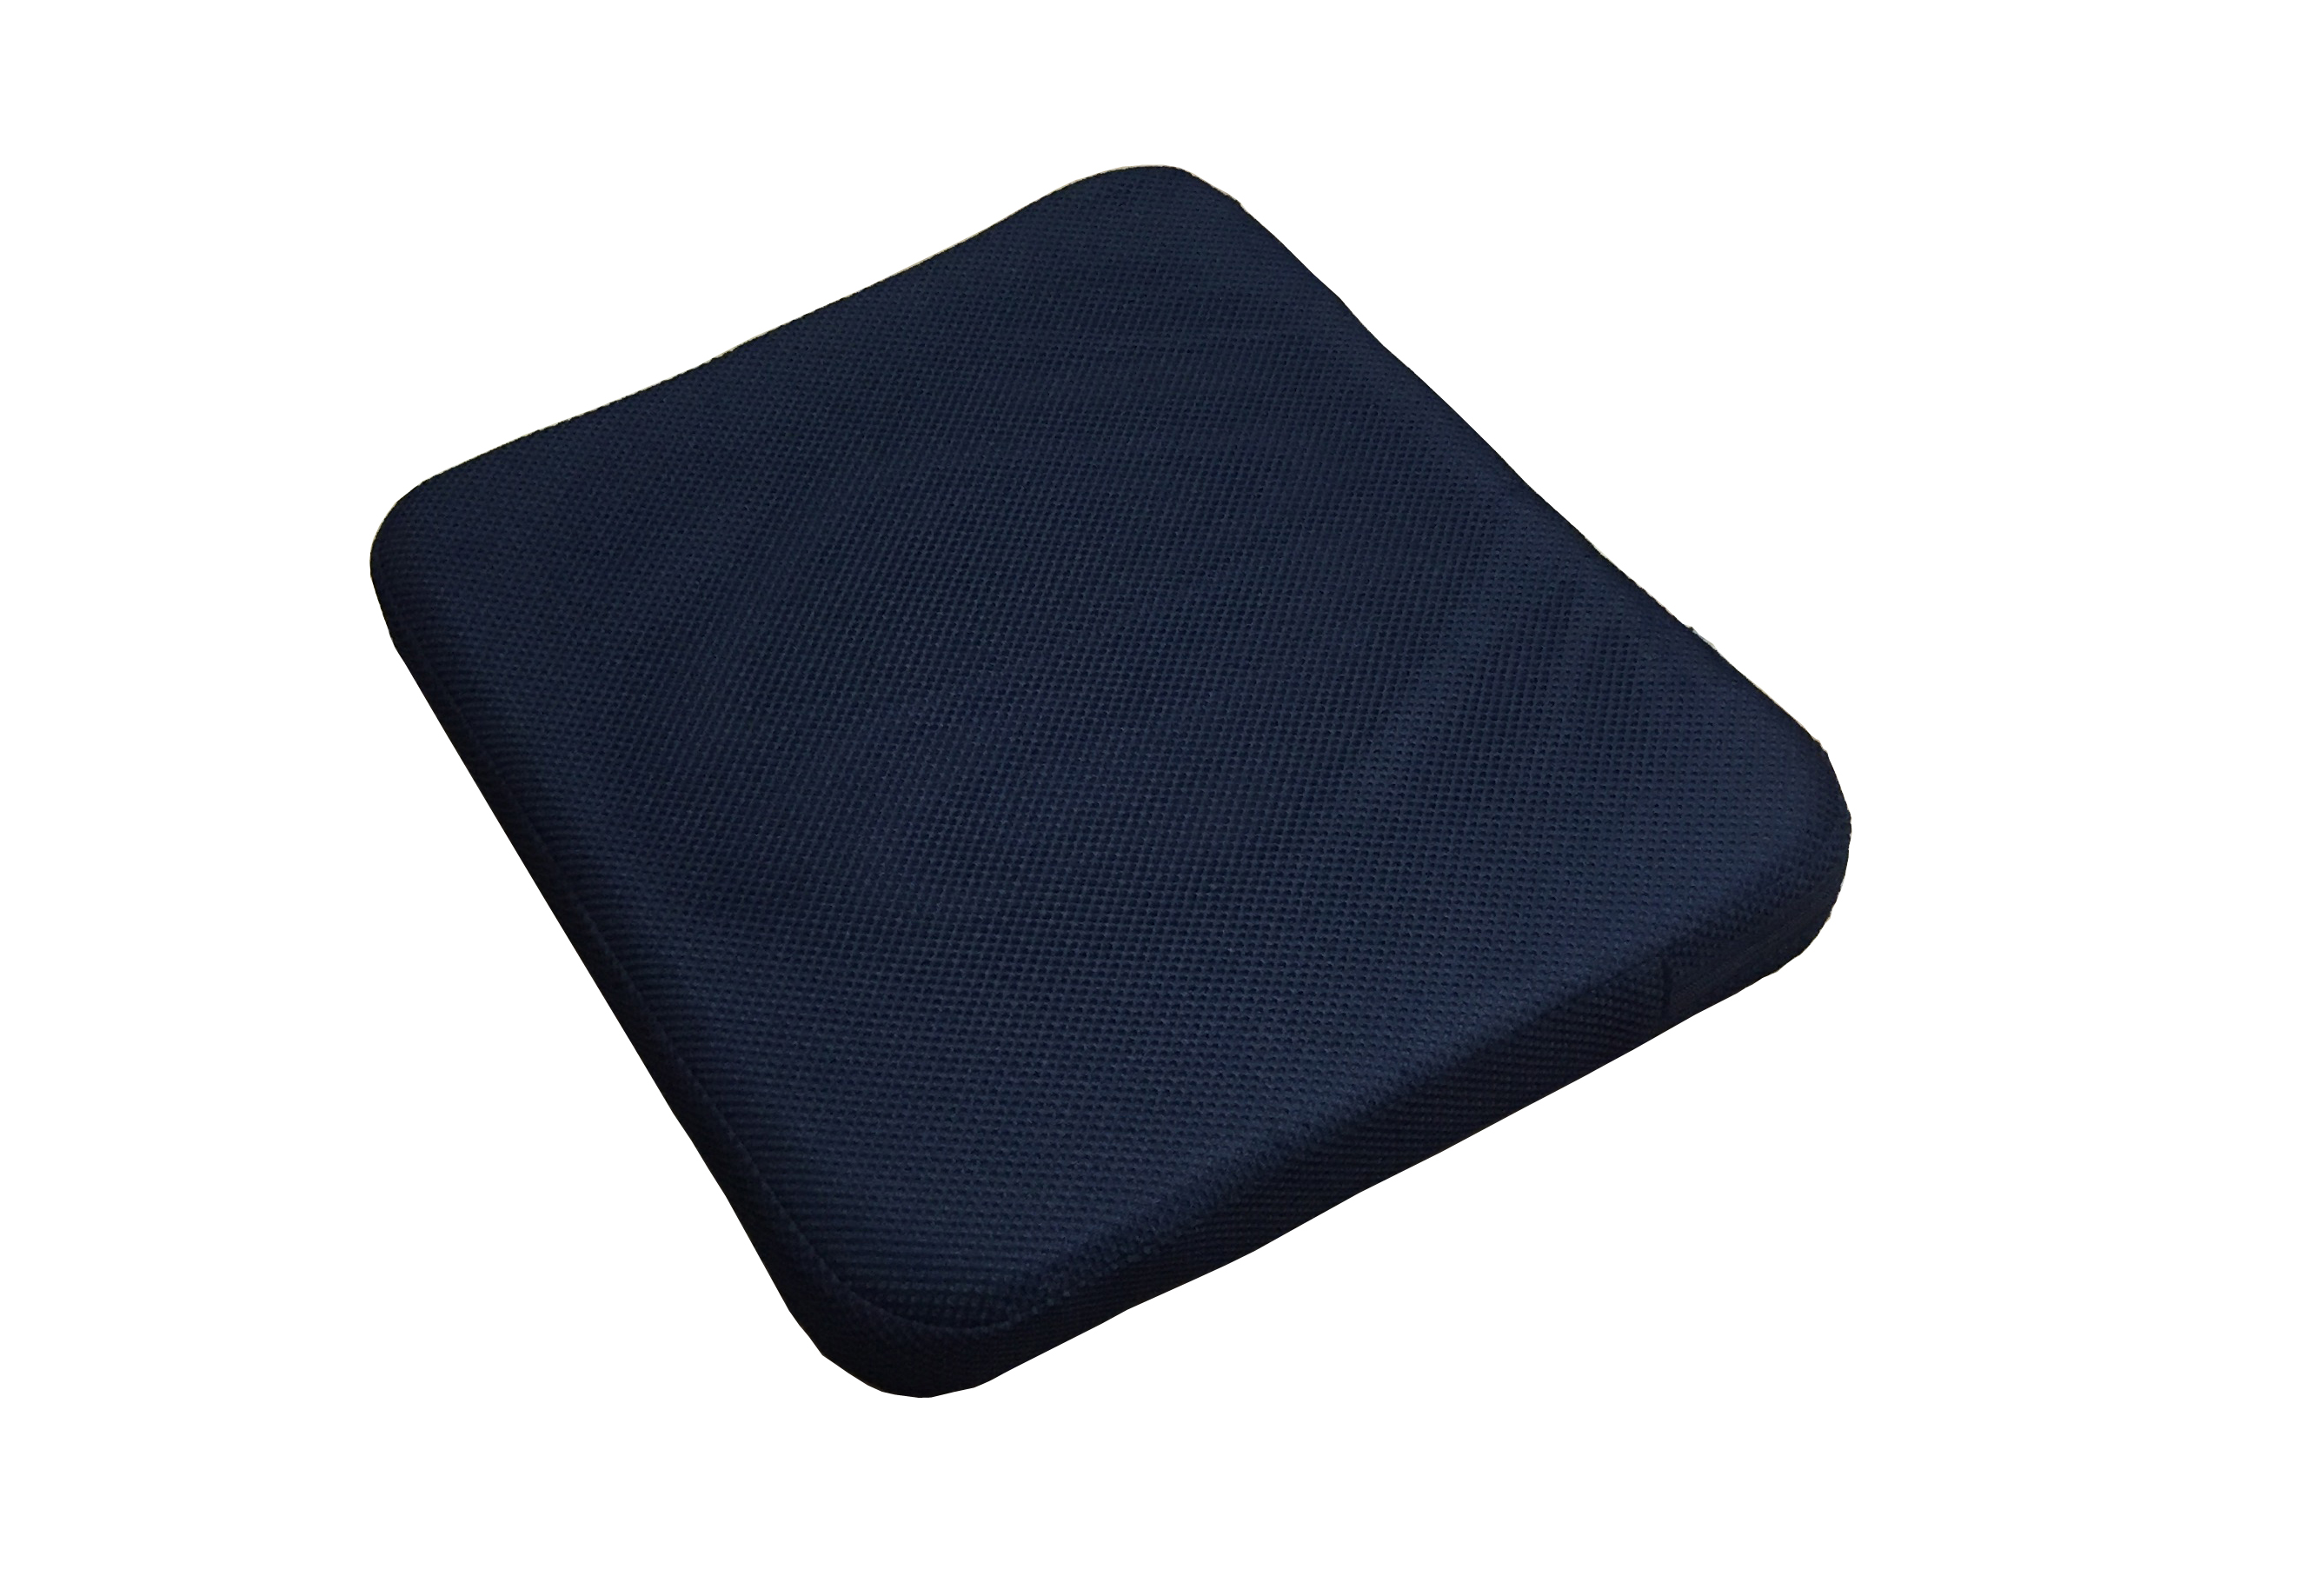 Wheel Chair Cushion Seat Cushion For Folding Power Wheelchair